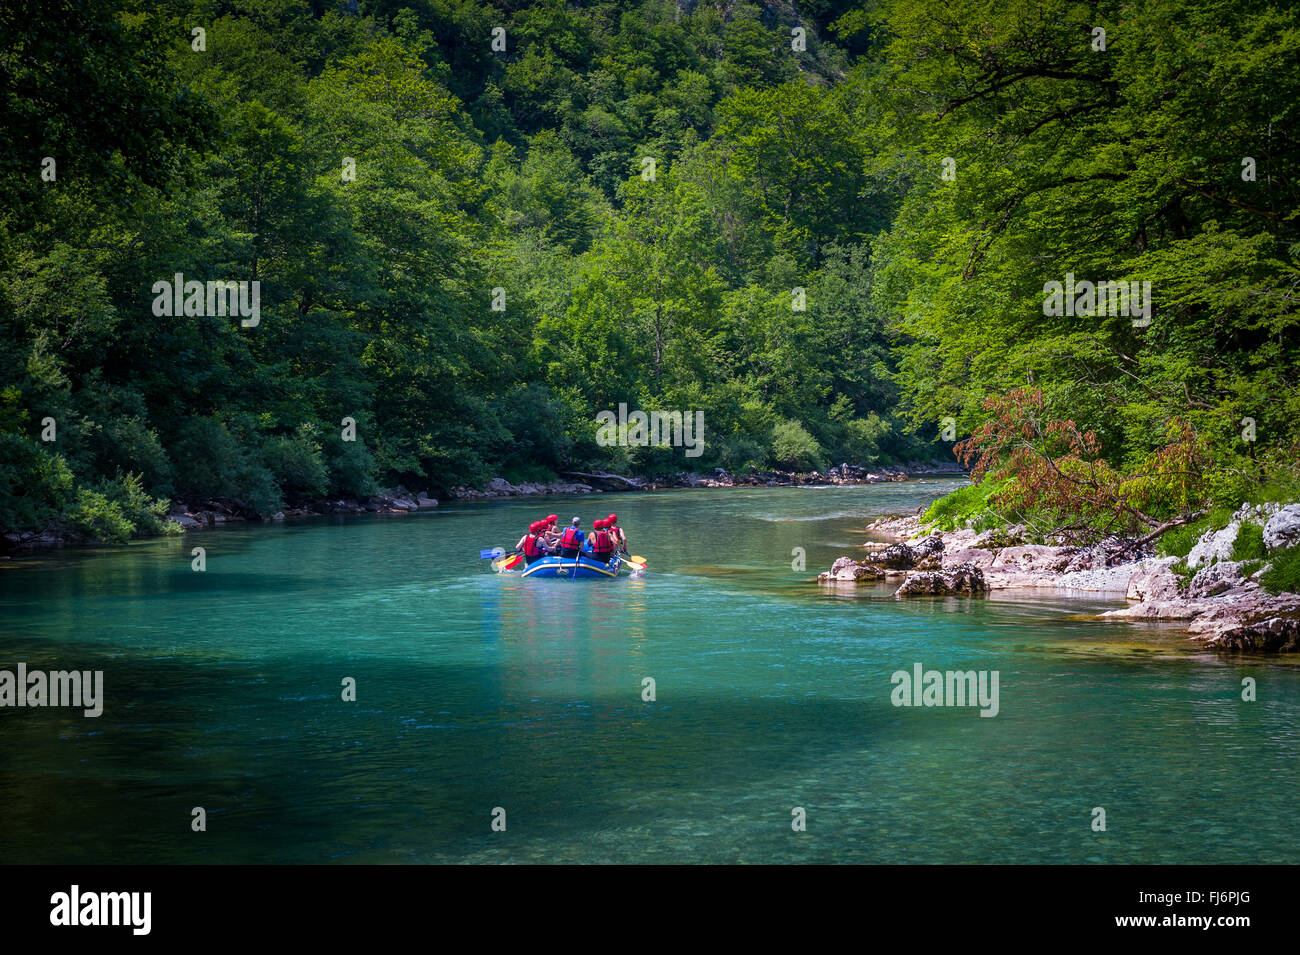 Tara's river rafting in Montenegro - Stock Image